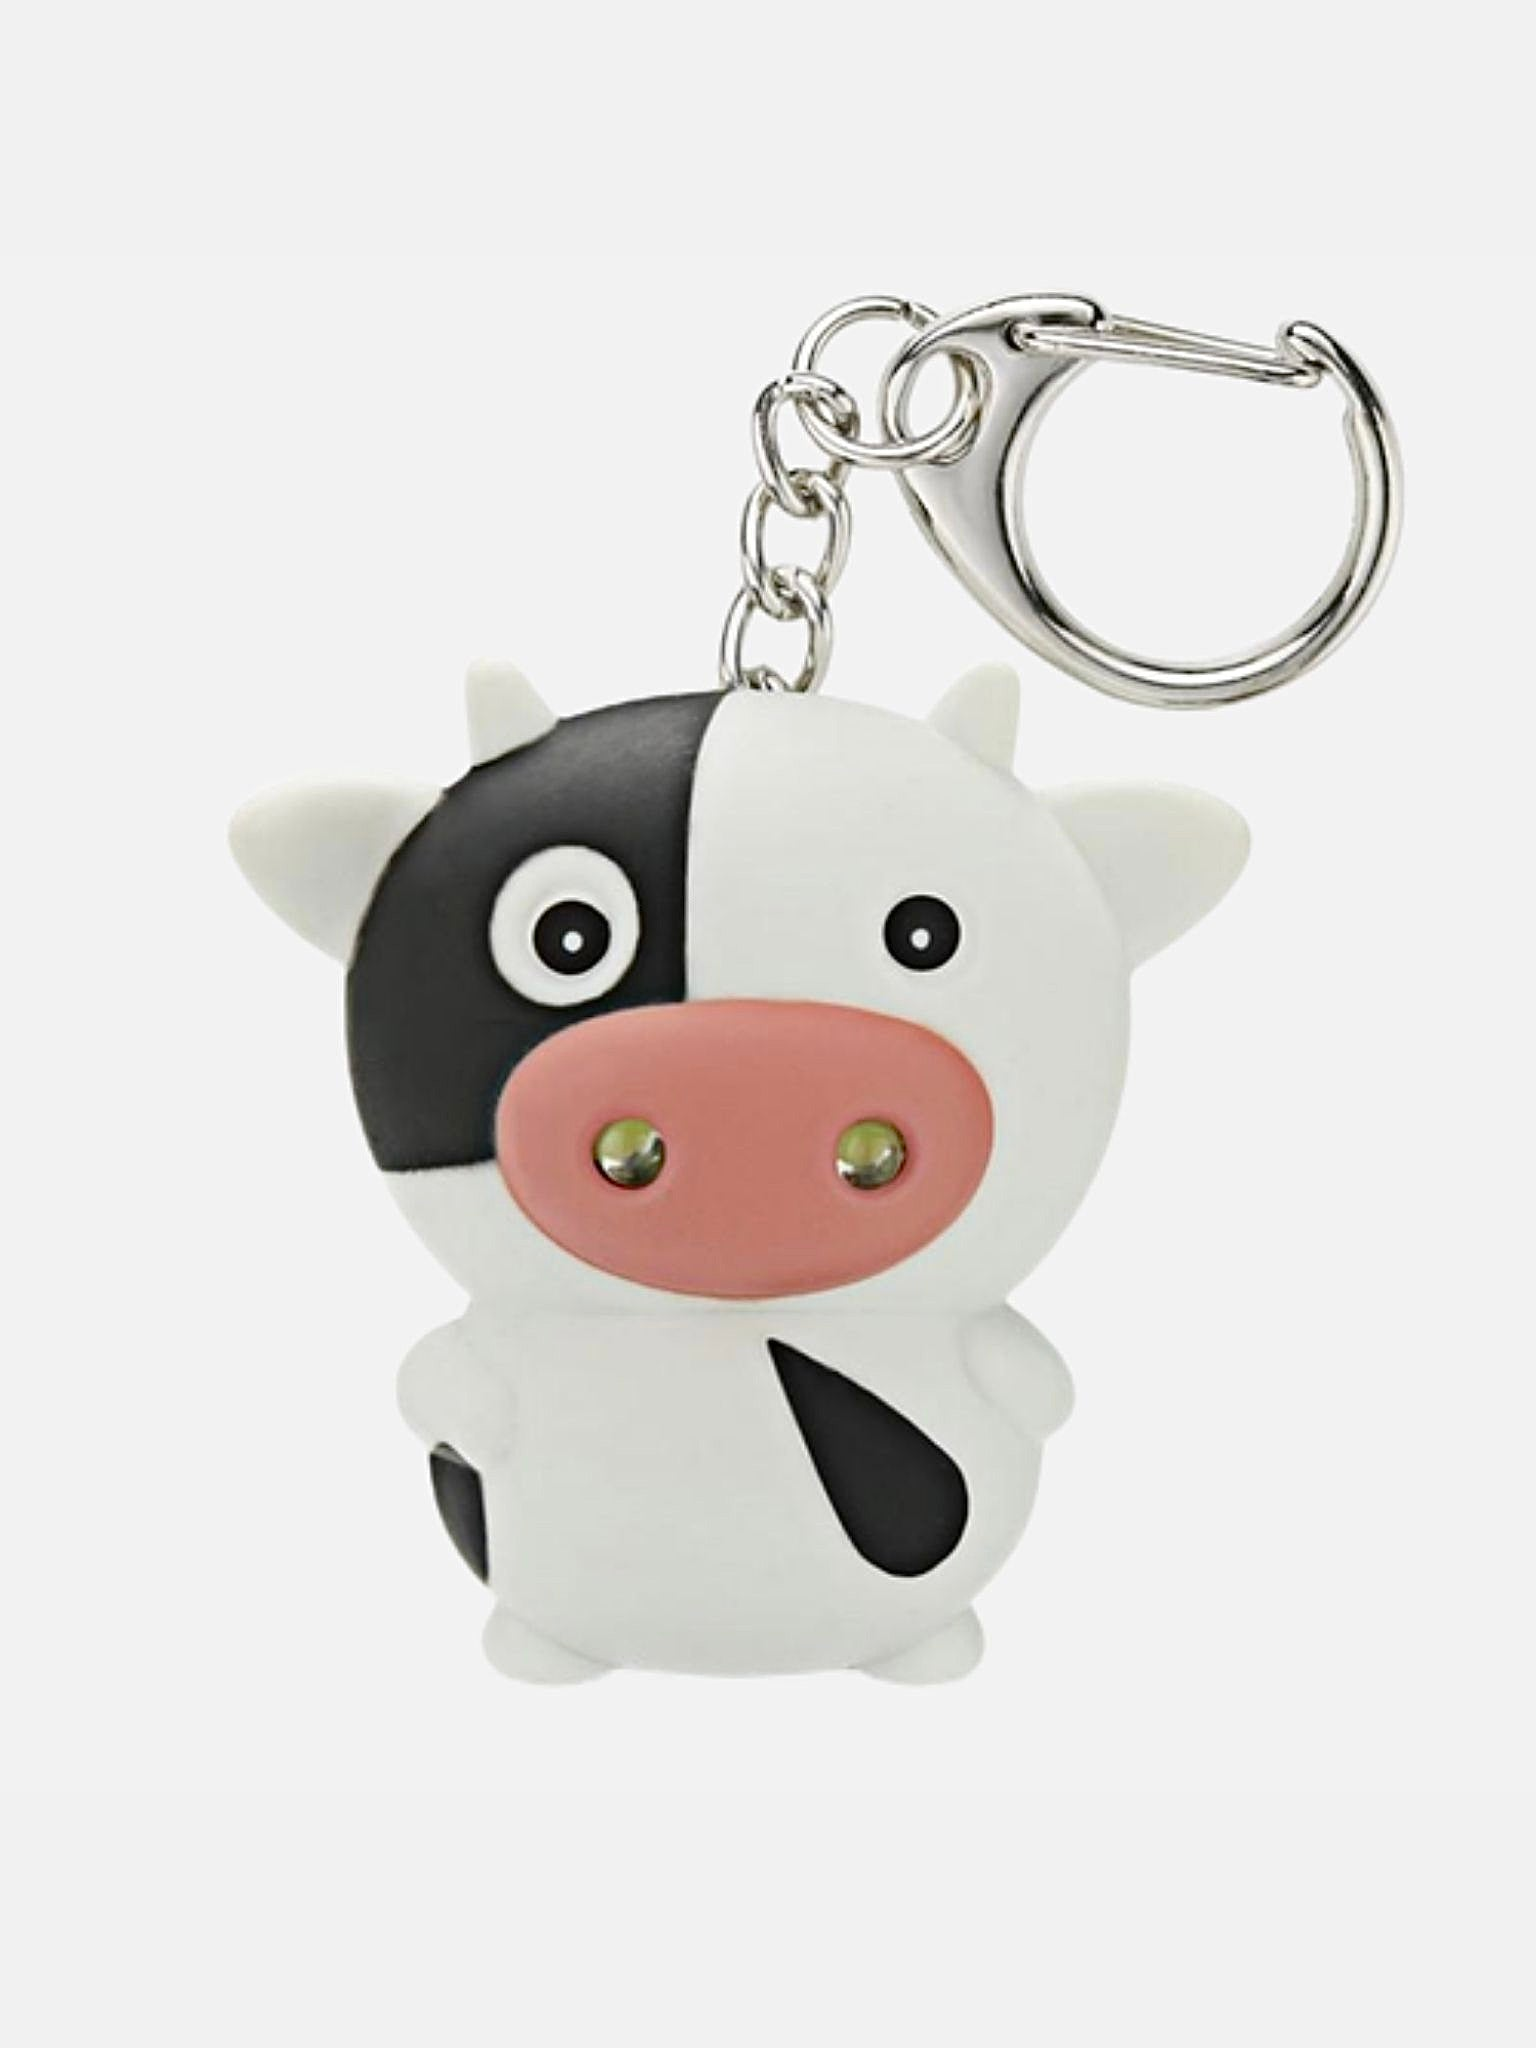 LED Cow Keychain with Sound     Cute Flashlight Mini Fun Gift Cattle Animal Keyring Key Chain Trend